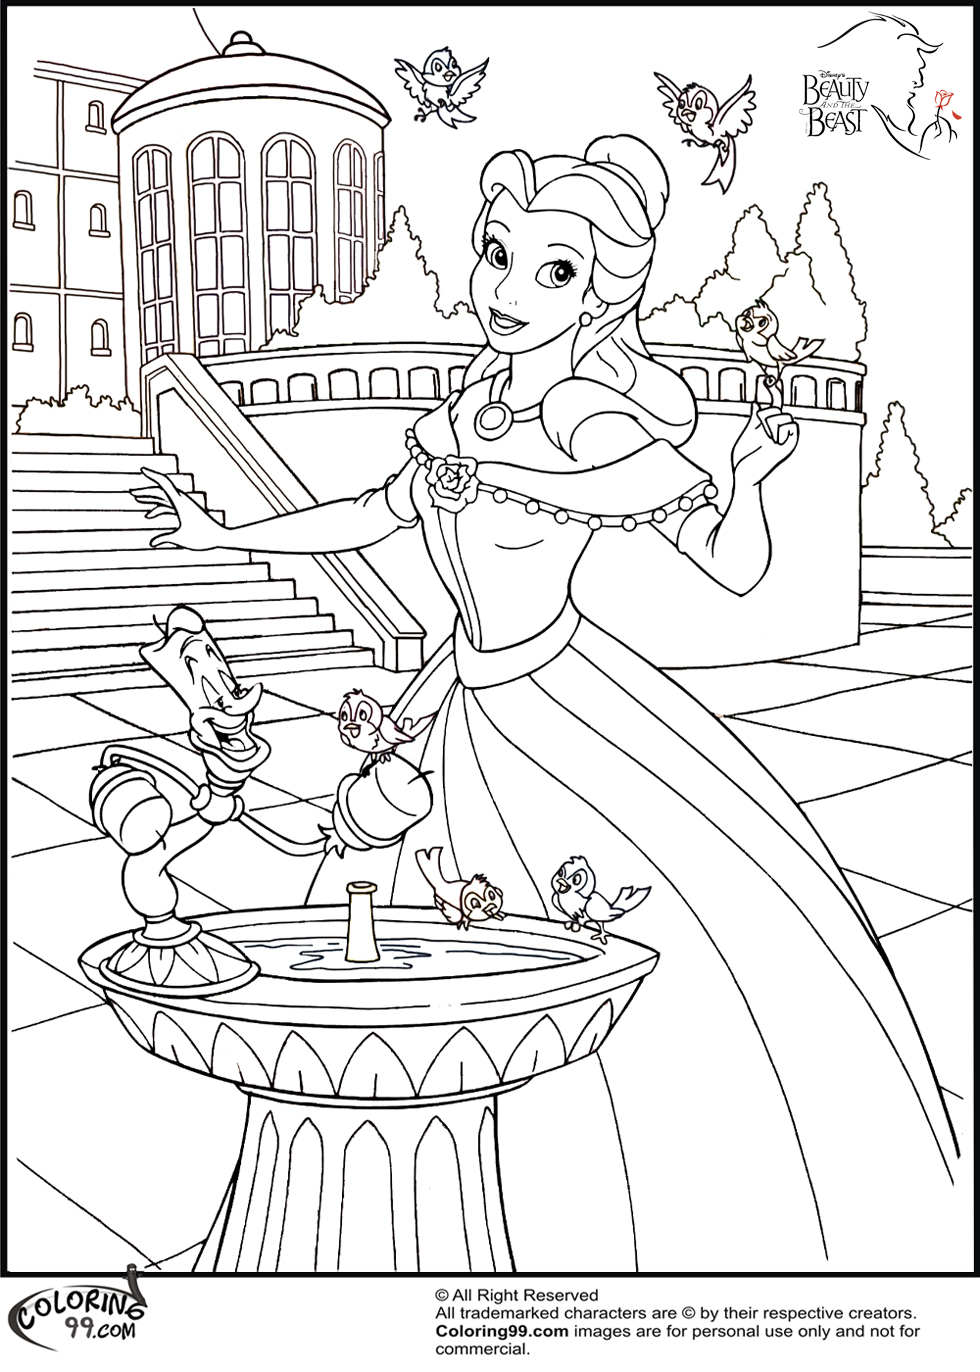 belle coloring pages - Belle Coloring Pages 2